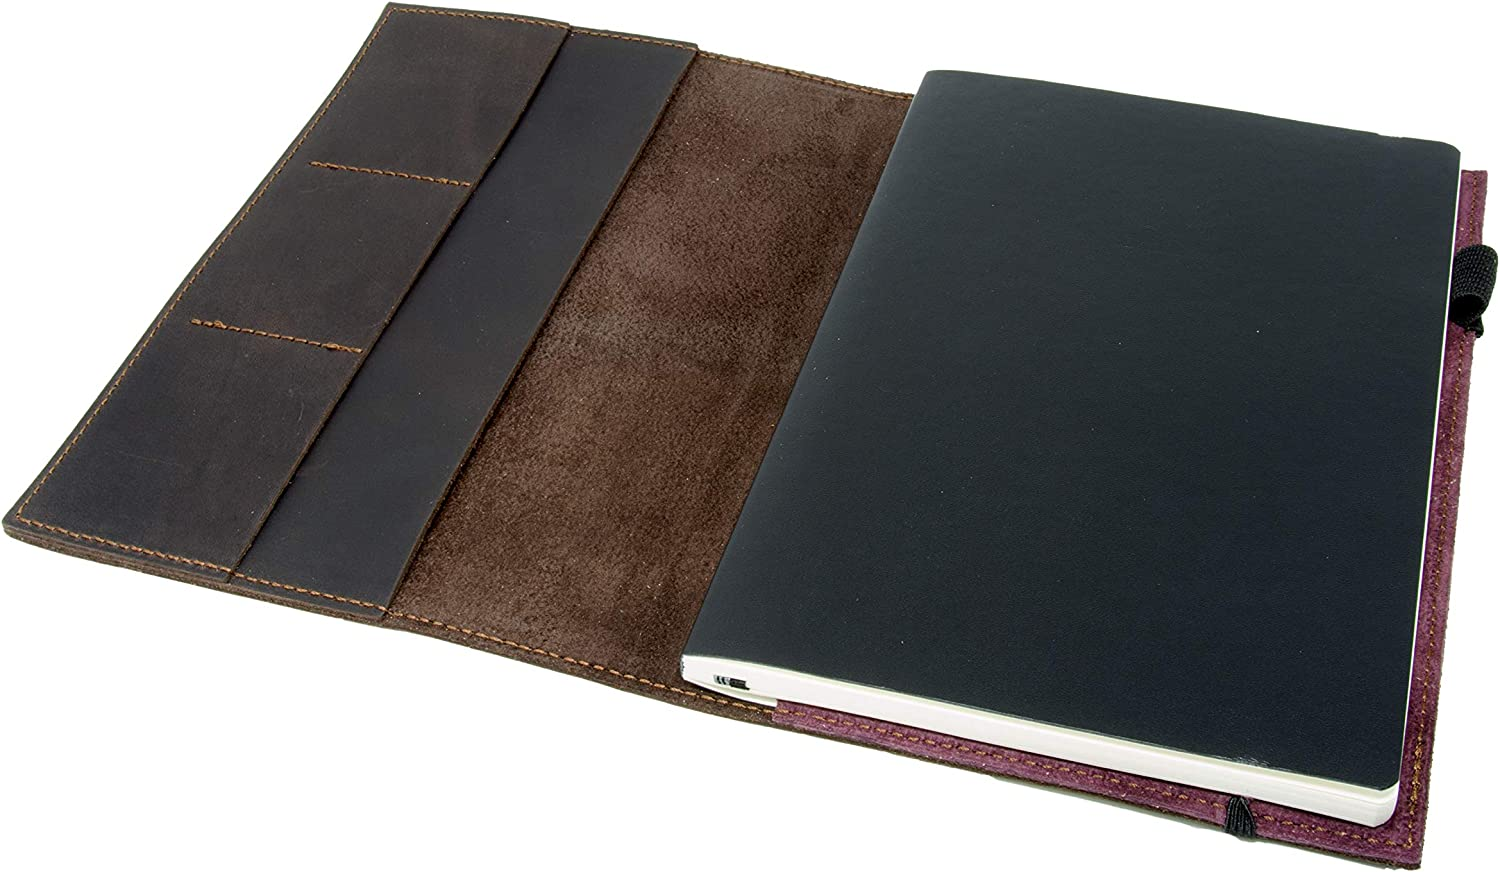 """Leather Journal Leuchtturm1917 Medium A5 (5.75""""x8.25"""") Softcover Notebook Travel Journal Cover Distressed Leather Refillable Writing Diary with Elastic Closure (Brown Nut Case)"""